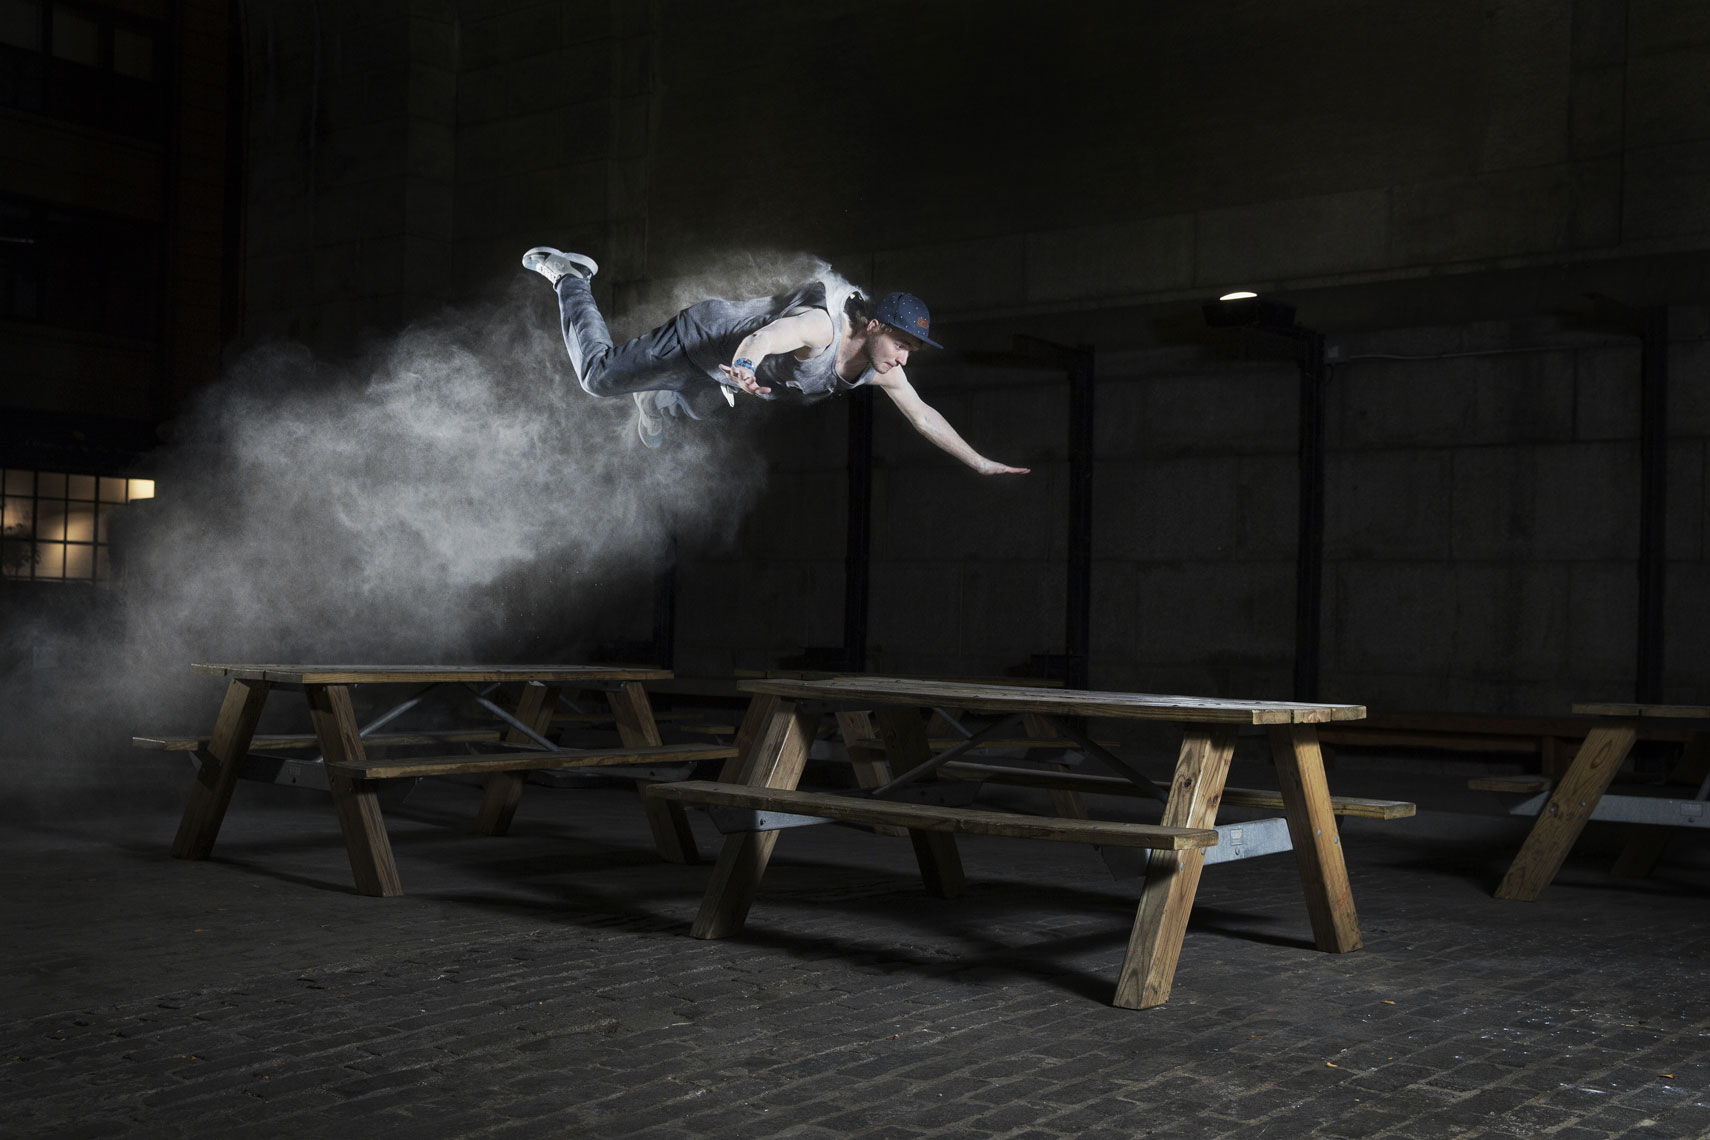 Parkourmotion_091114_0315